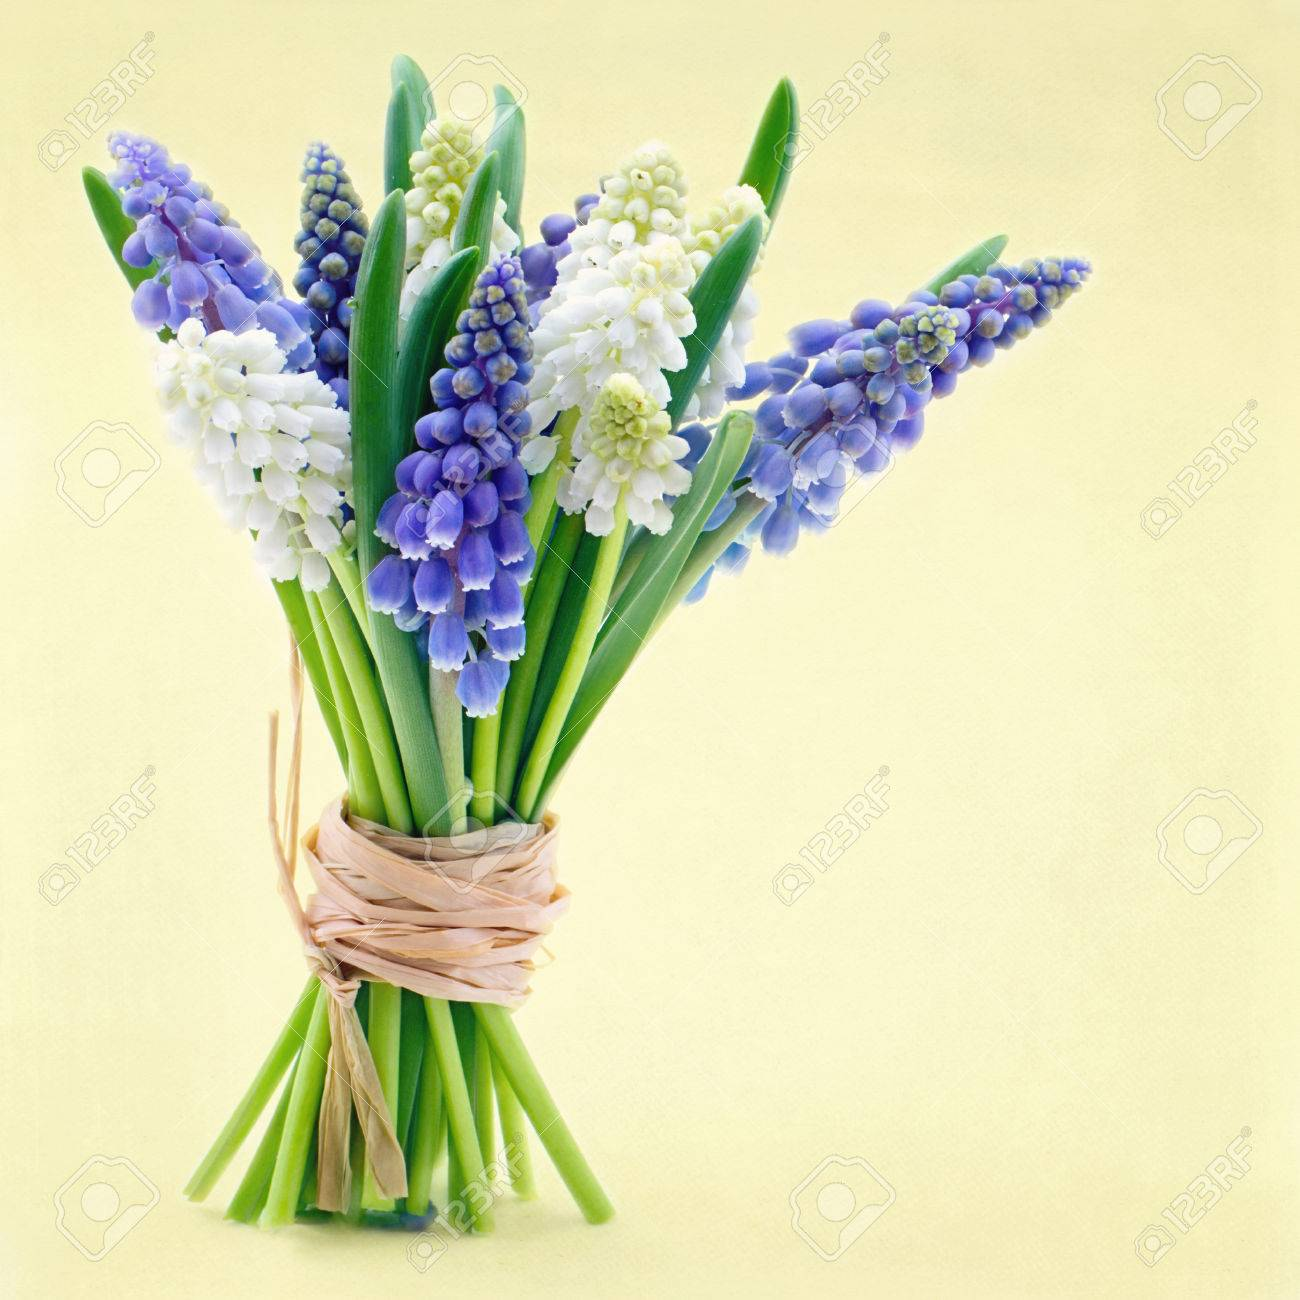 Bouquet of blue and white grape hyacinth spring flowers on yellow bouquet of blue and white grape hyacinth spring flowers on yellow easter background stock photo dhlflorist Choice Image